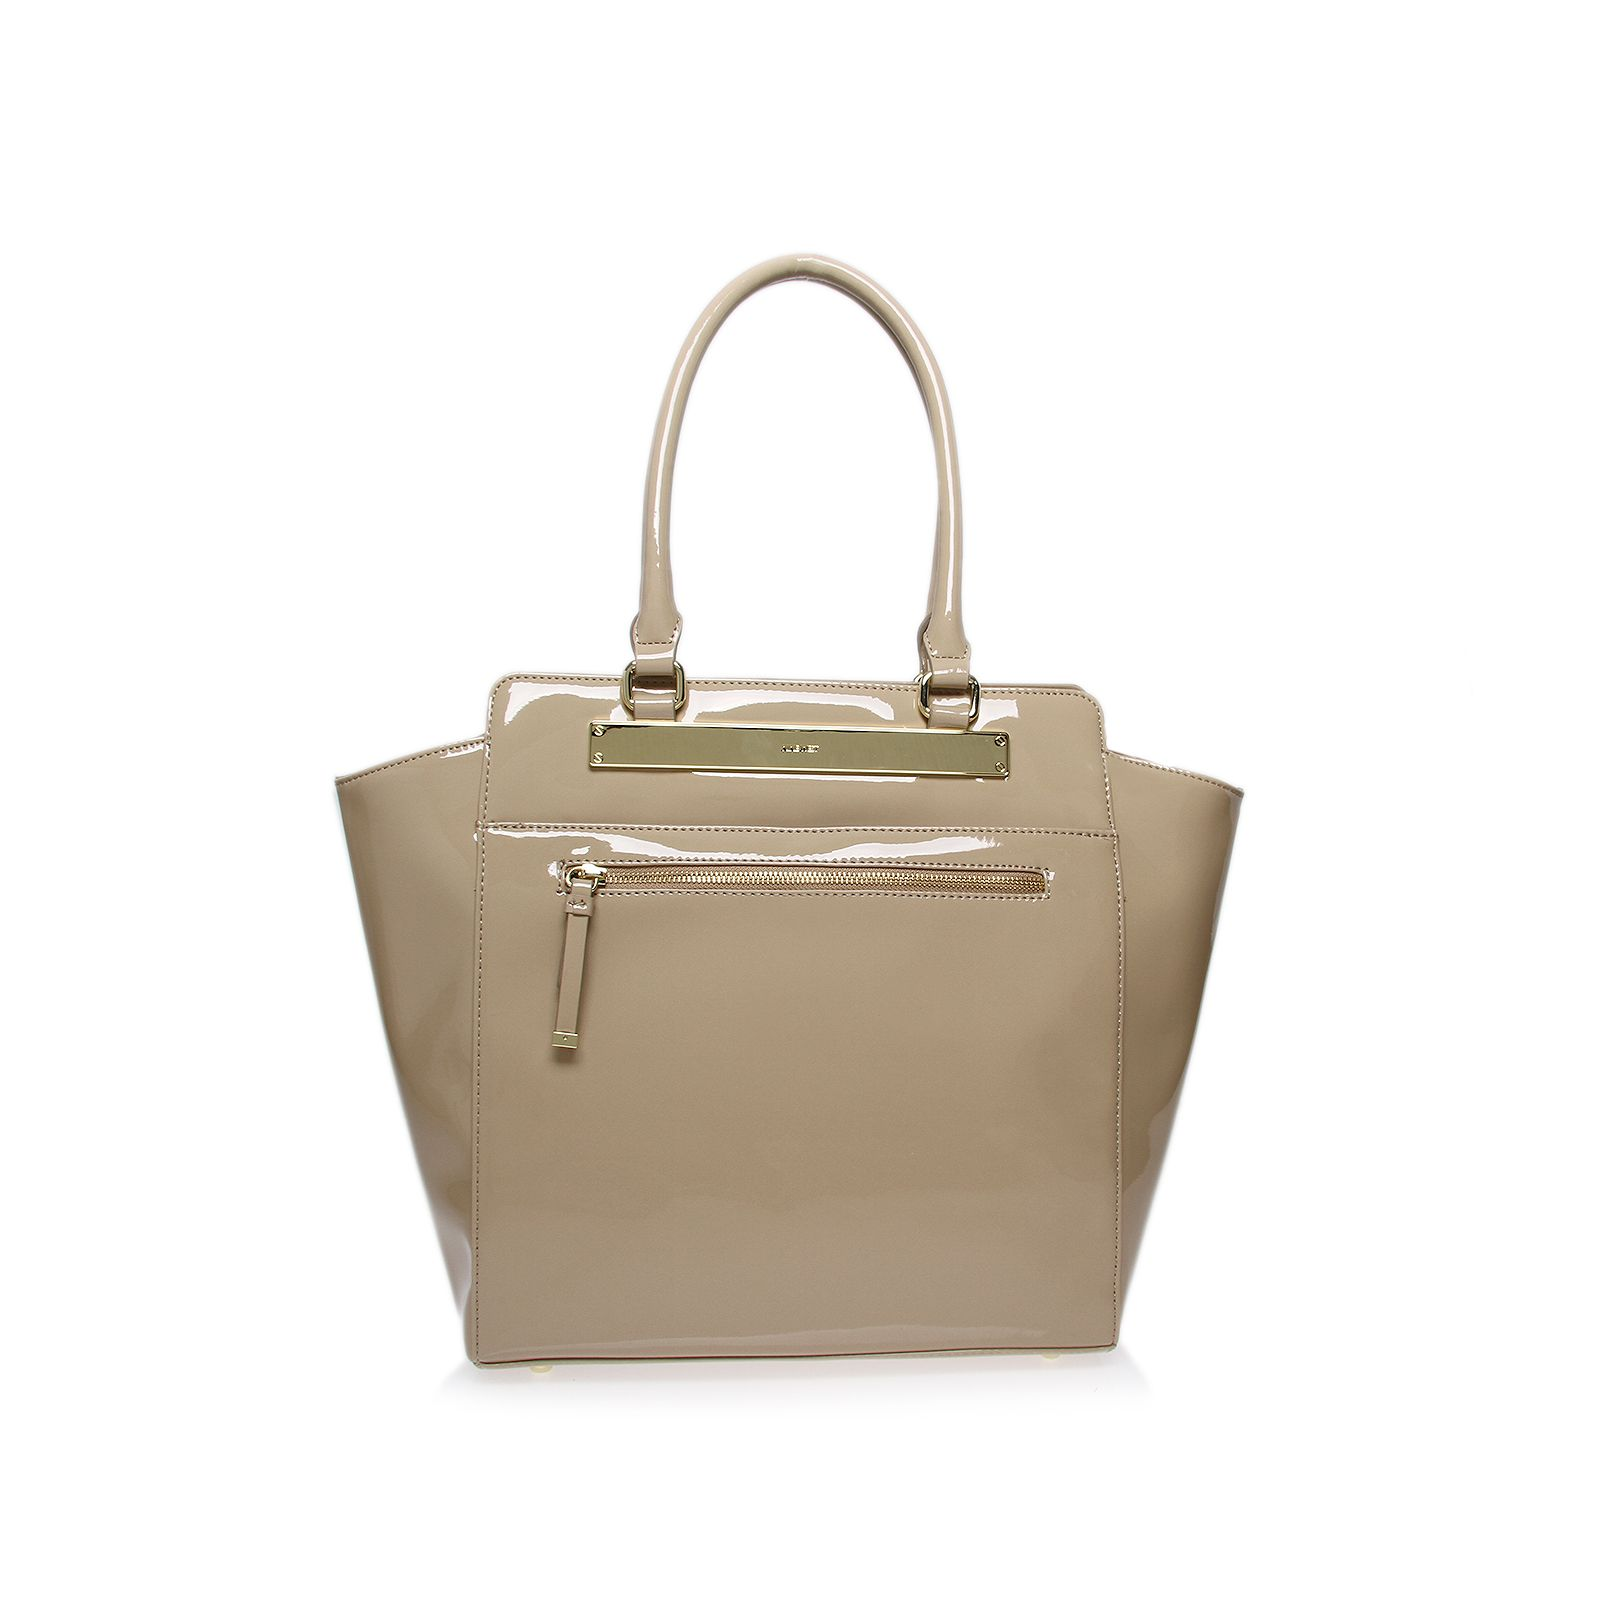 Borderline champagne tote handbag